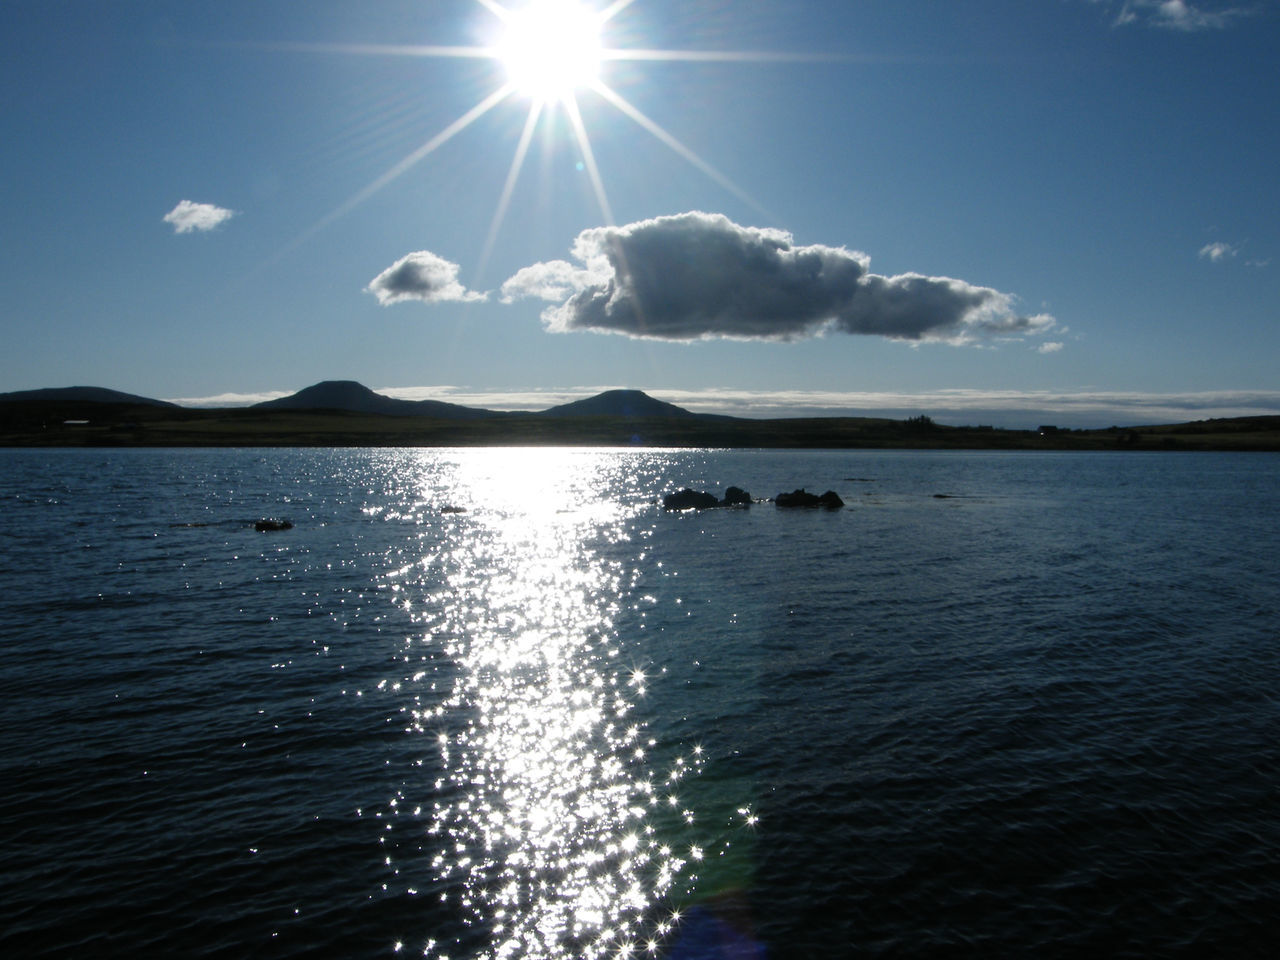 Beauty In Nature Caroy Jetty Day Horizon Over Water Idyllic Isle Of Skye Loch Caroy MacLeod's Tables Nature No People Outdoors Rippled Scenics Scotland Sea Sky Sun Sun On The Sea Sun On The Water Sunlight Tranquil Scene Tranquility Water Waterfront